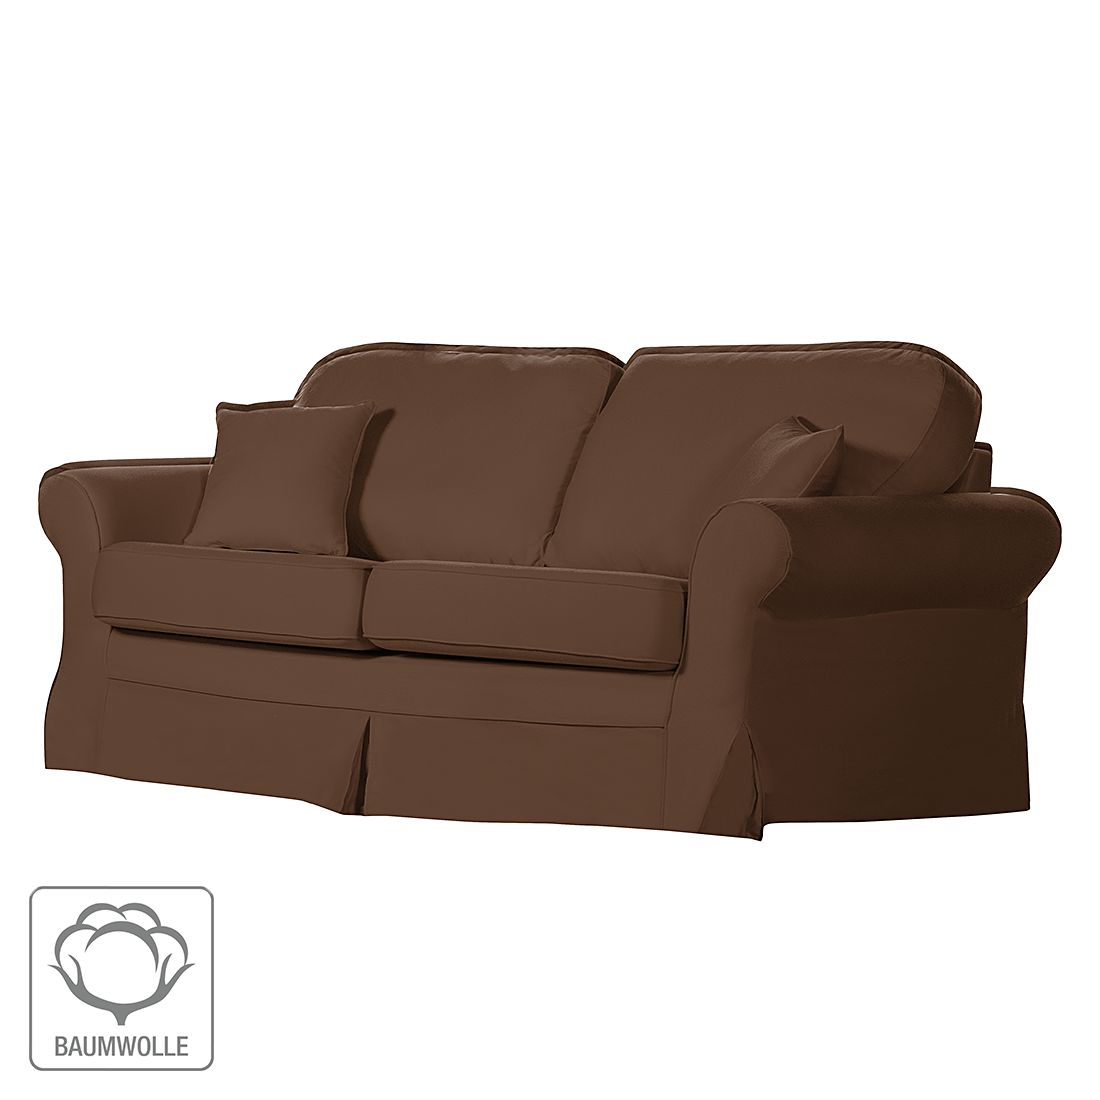 sofa louanne 3 sitzer baumwollstoff braun jack alice g nstig kaufen. Black Bedroom Furniture Sets. Home Design Ideas